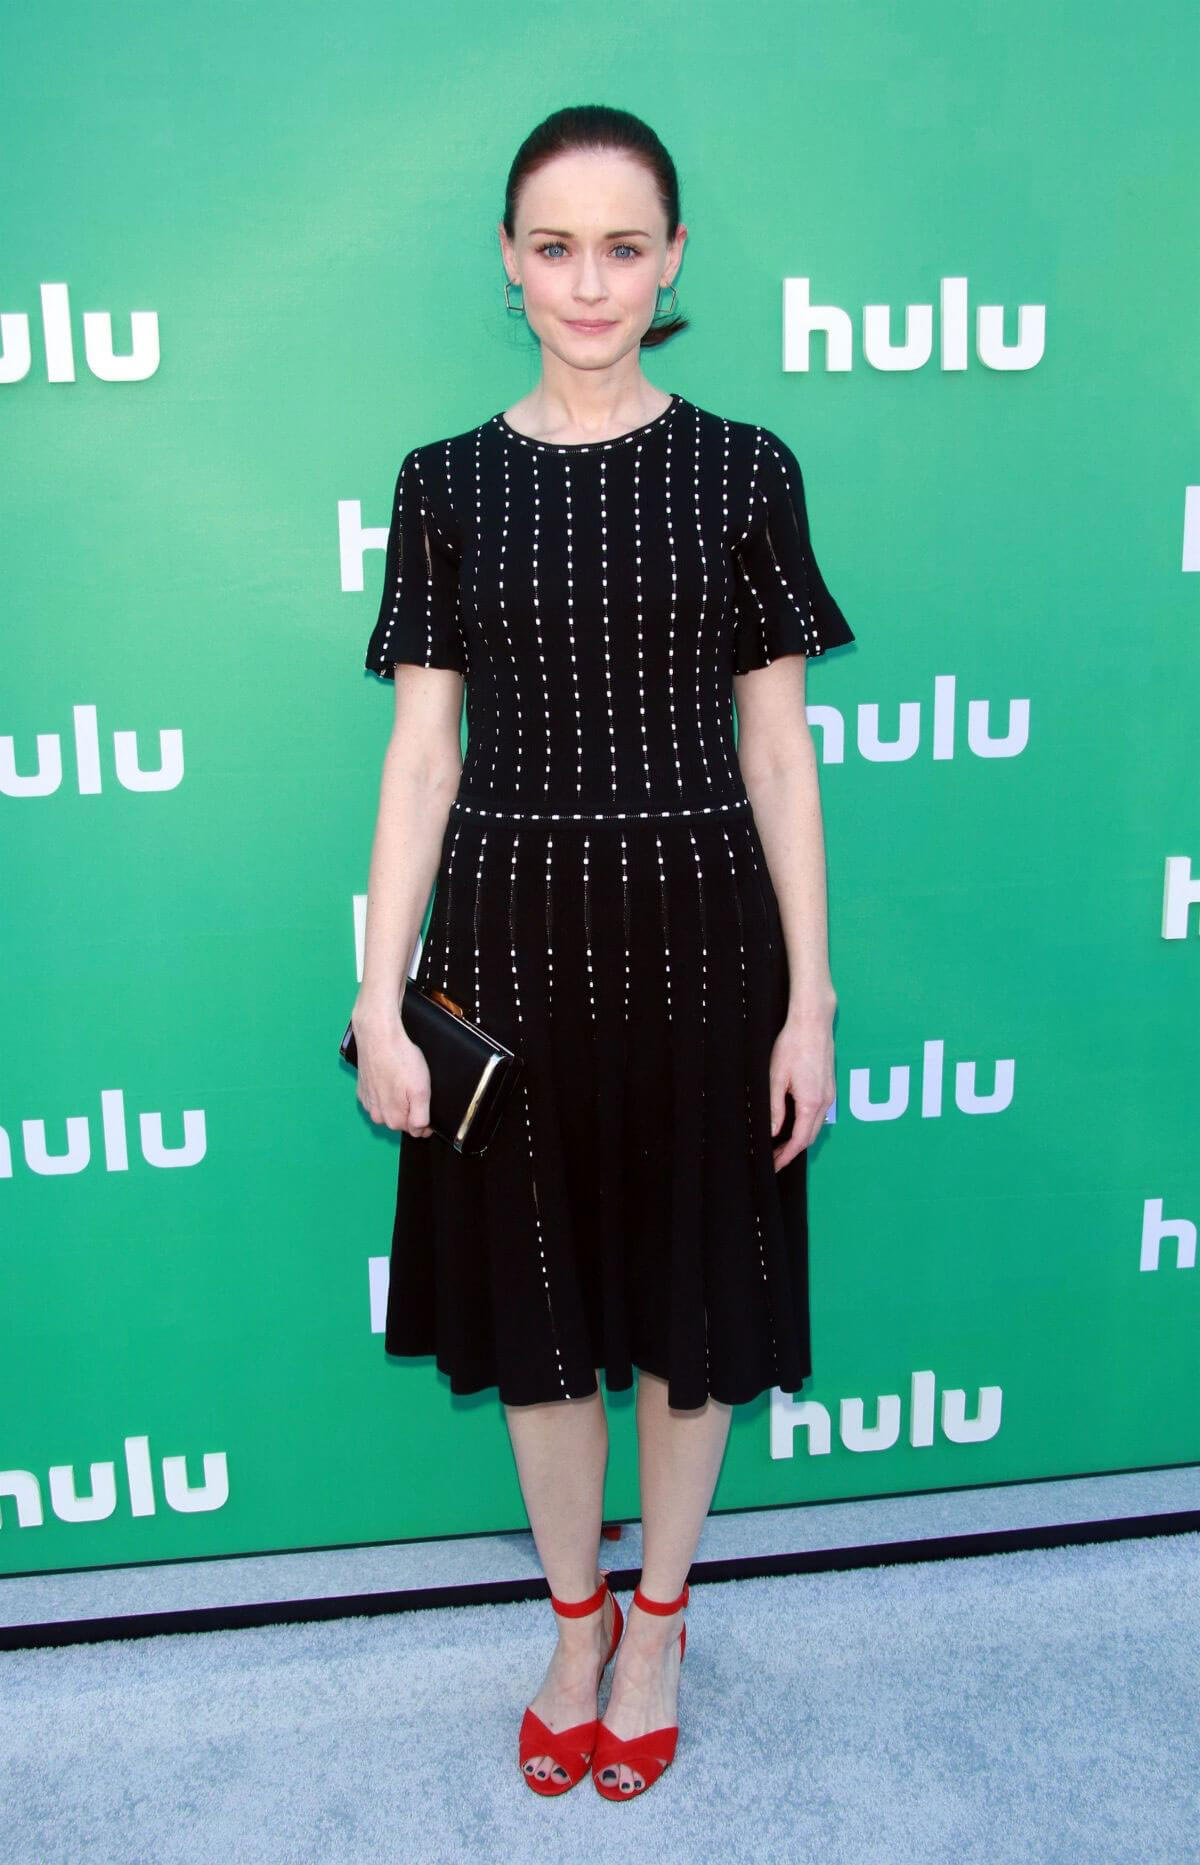 Alexis Bledel Stills at Hulu Upfront Presentation in New York 2018/05/02 11